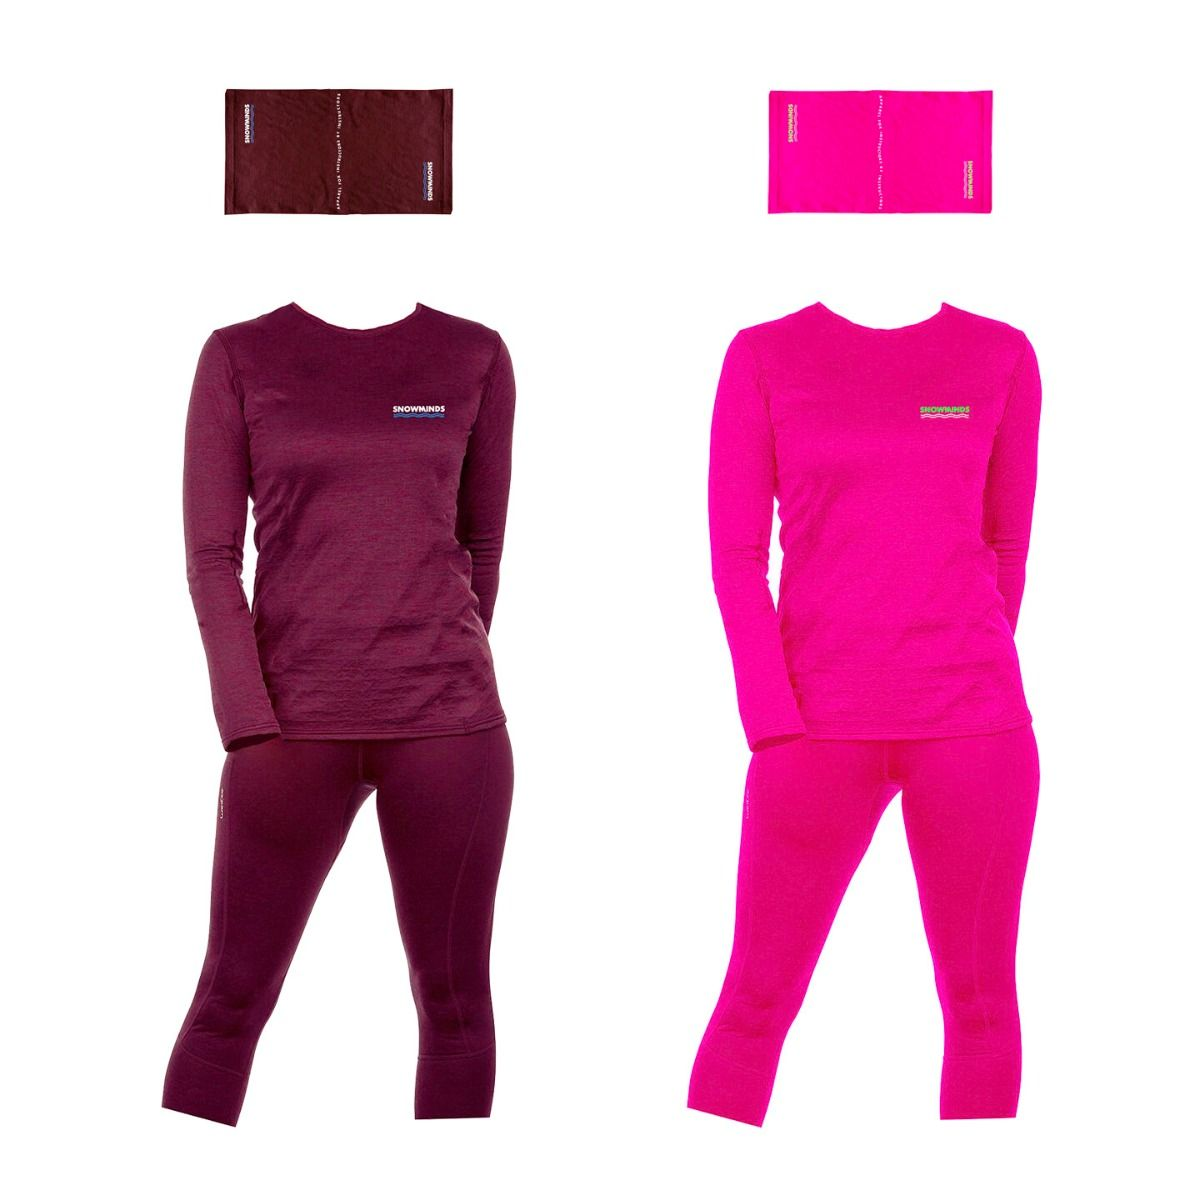 The Marvellous Merino Woman Package